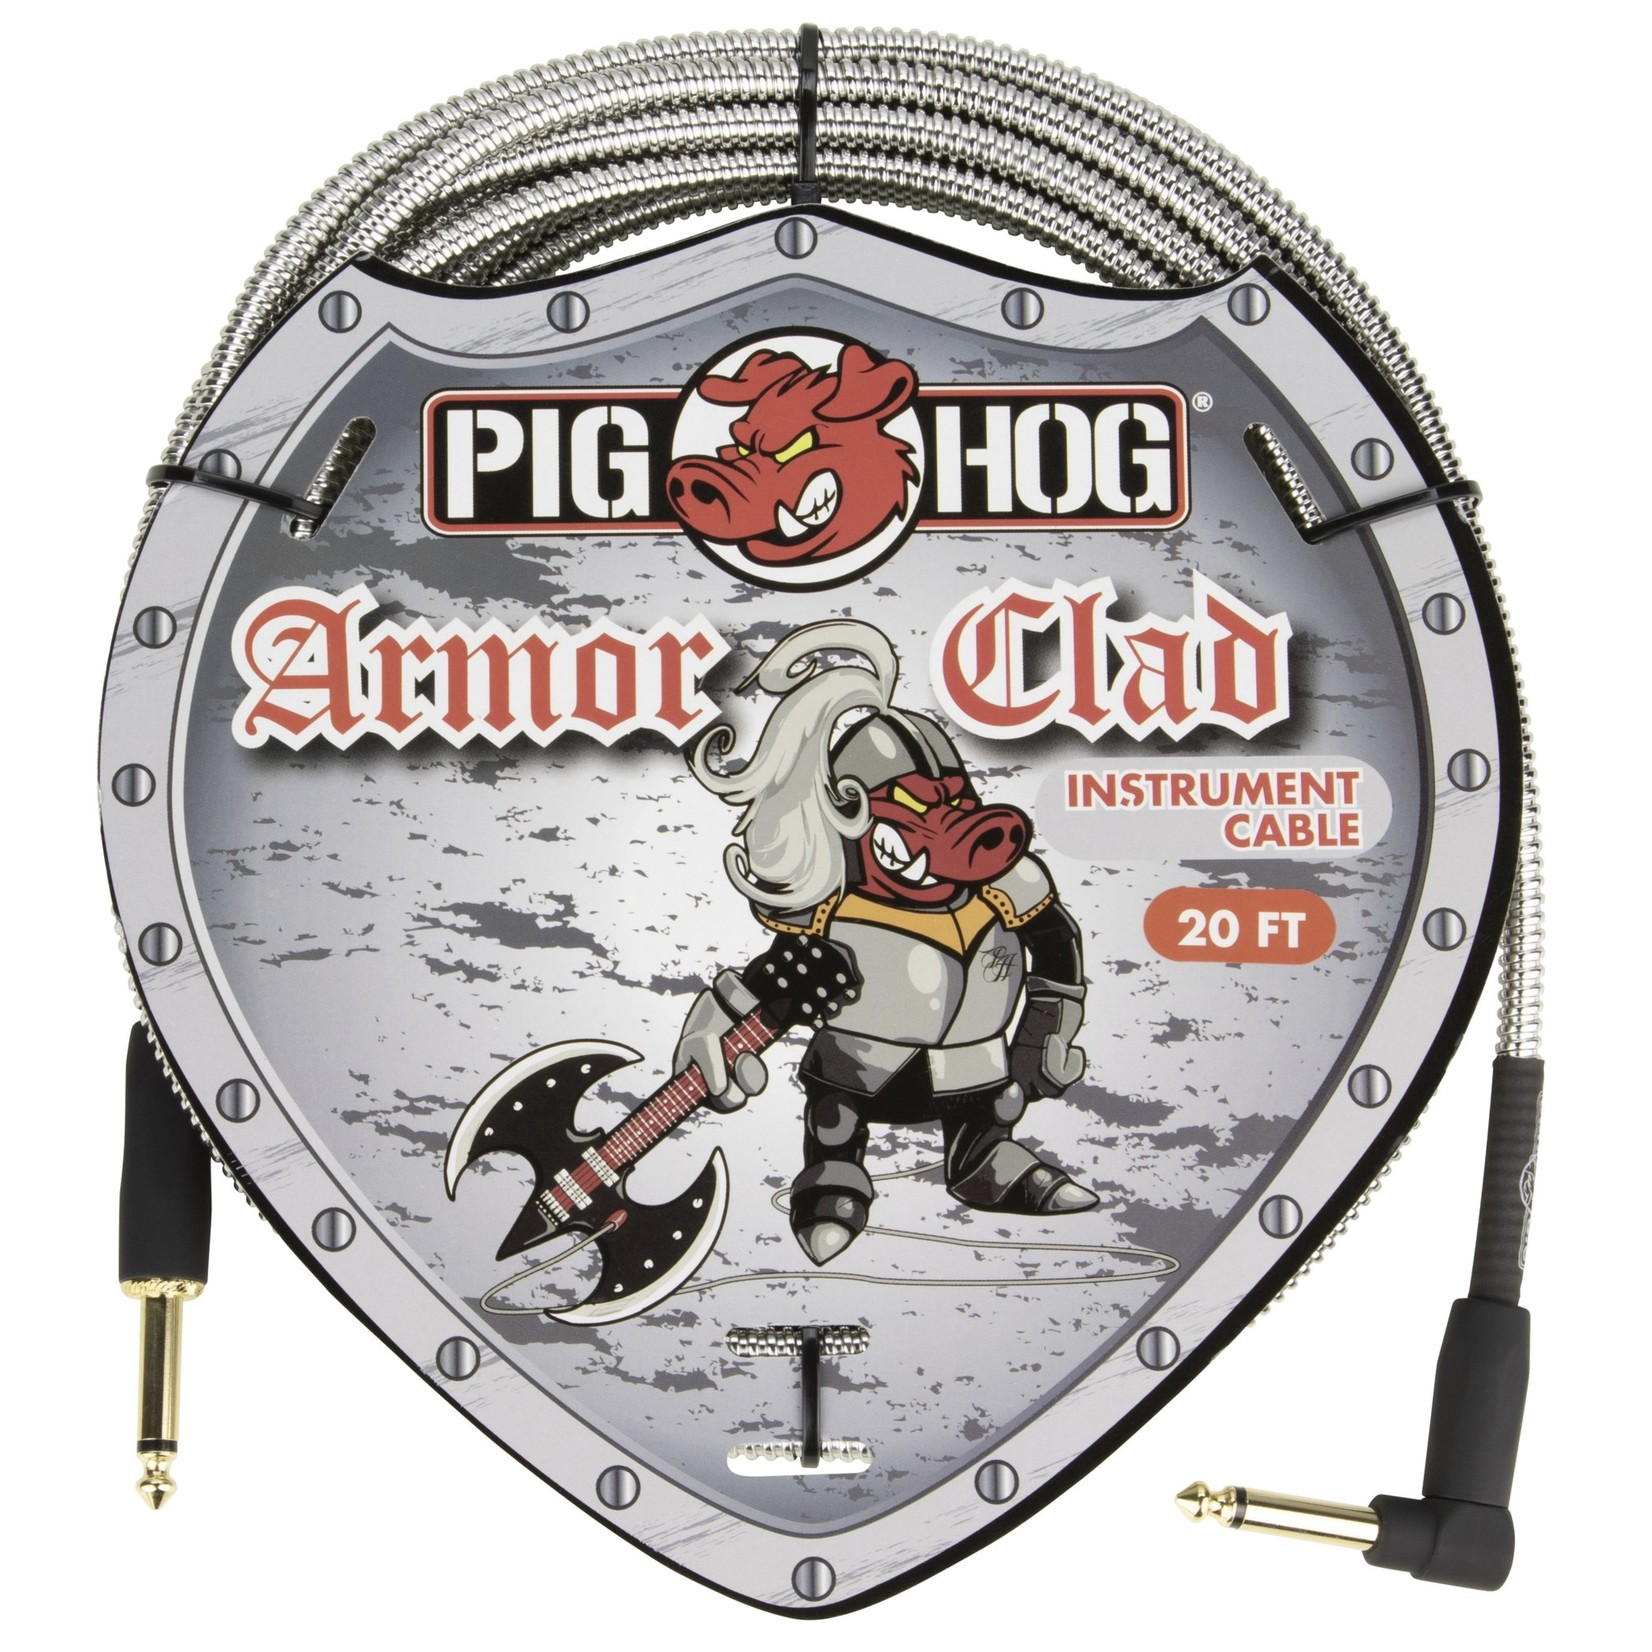 """Pig Hog Pig Hog """"Armor Clad"""" Instrument Cable, 20 Feet, 1/4""""-1/4"""" Right Angle, Industrial Look (PHAC-20R)"""